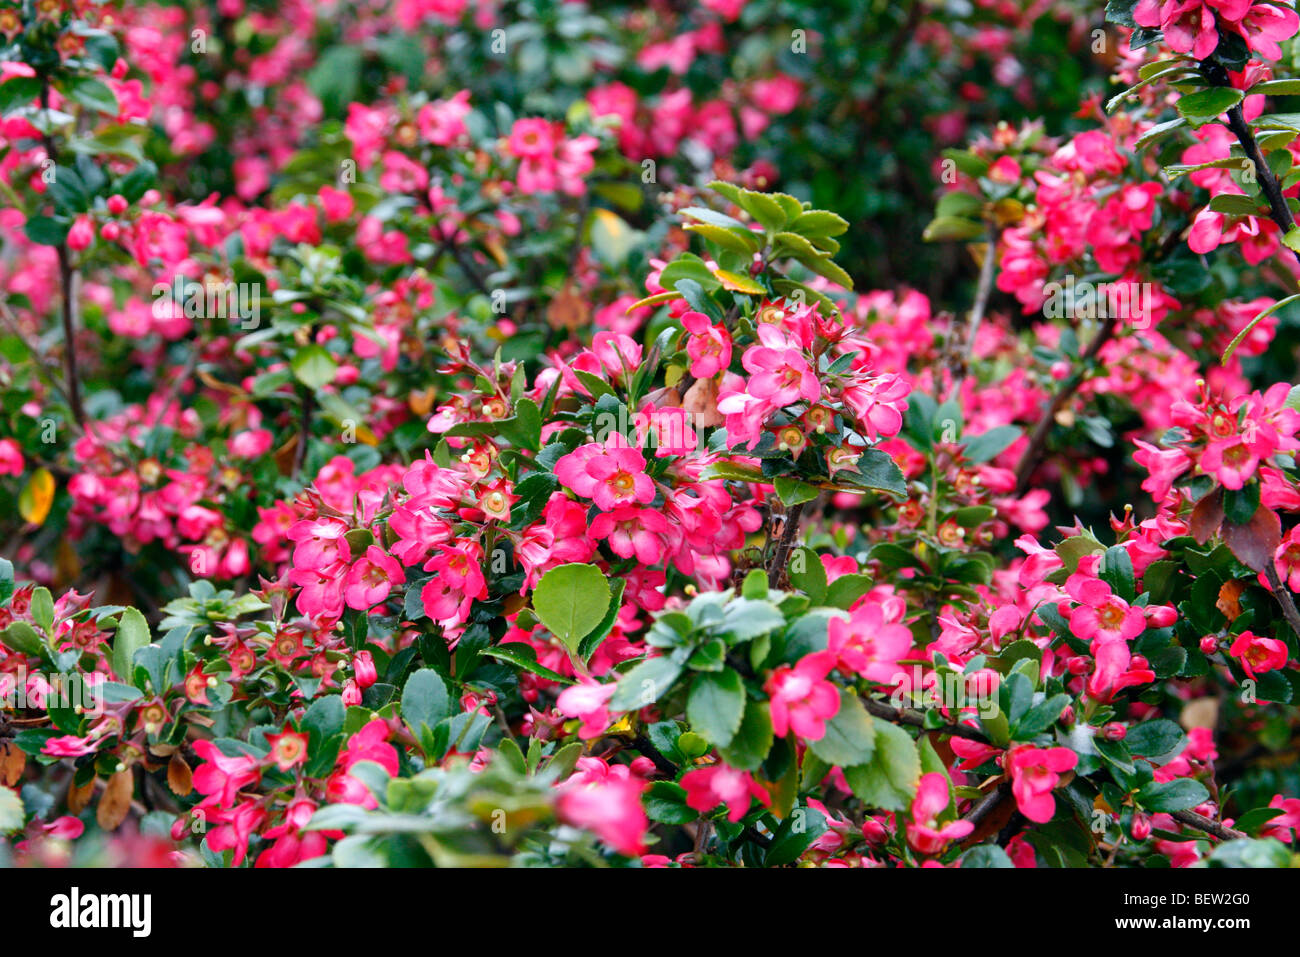 Hedging Stock Photos Hedging Stock Images Alamy